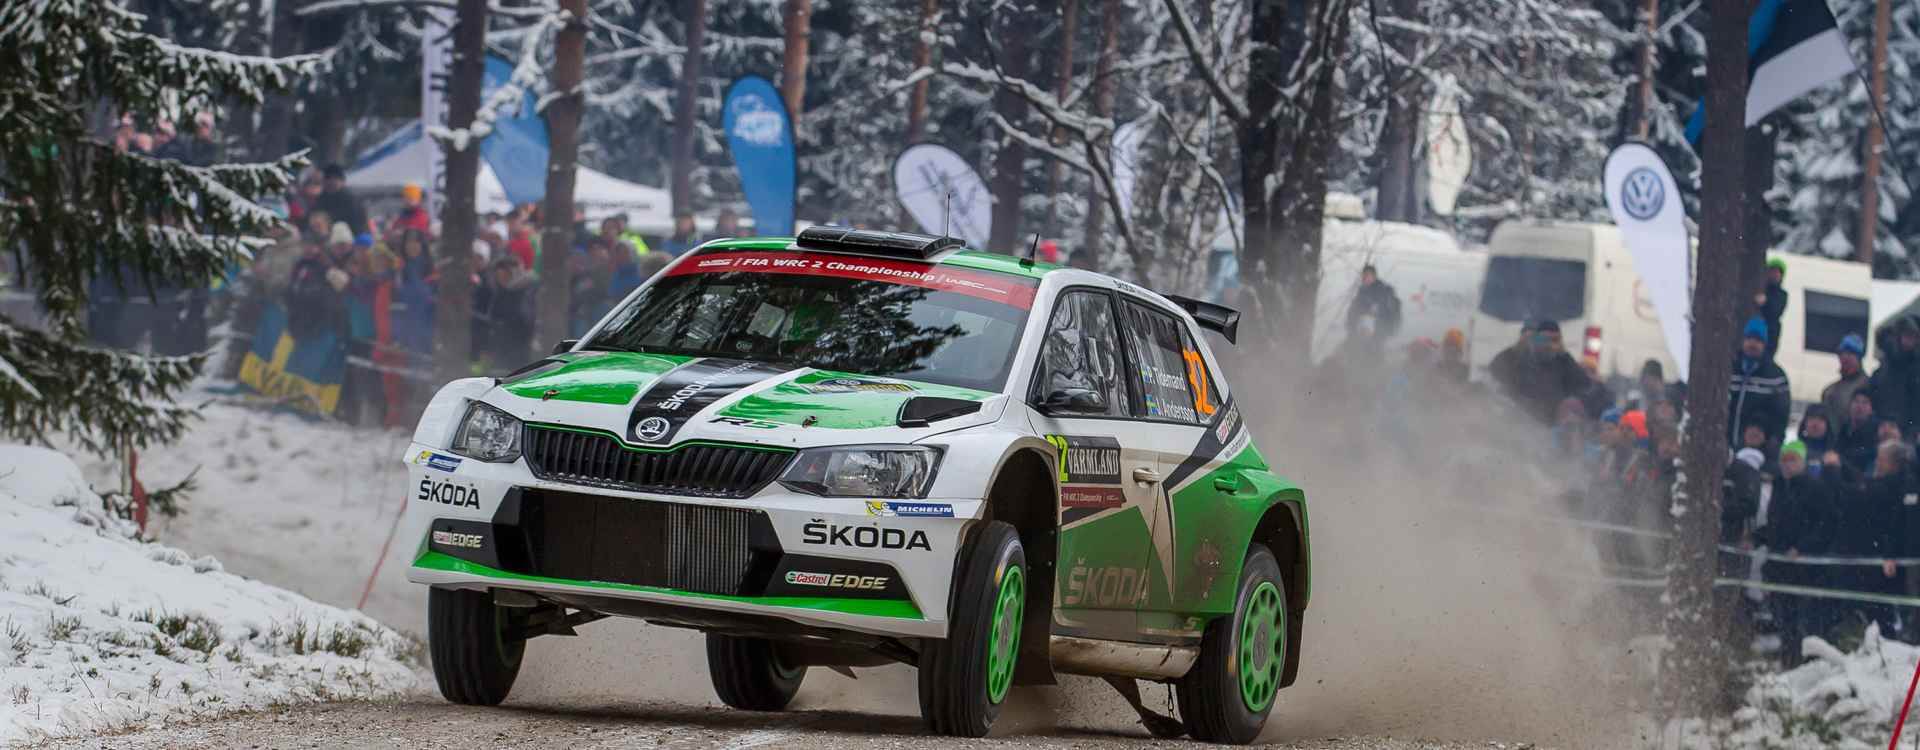 ŠKODA celebrates podium positions at the Rally Sweden